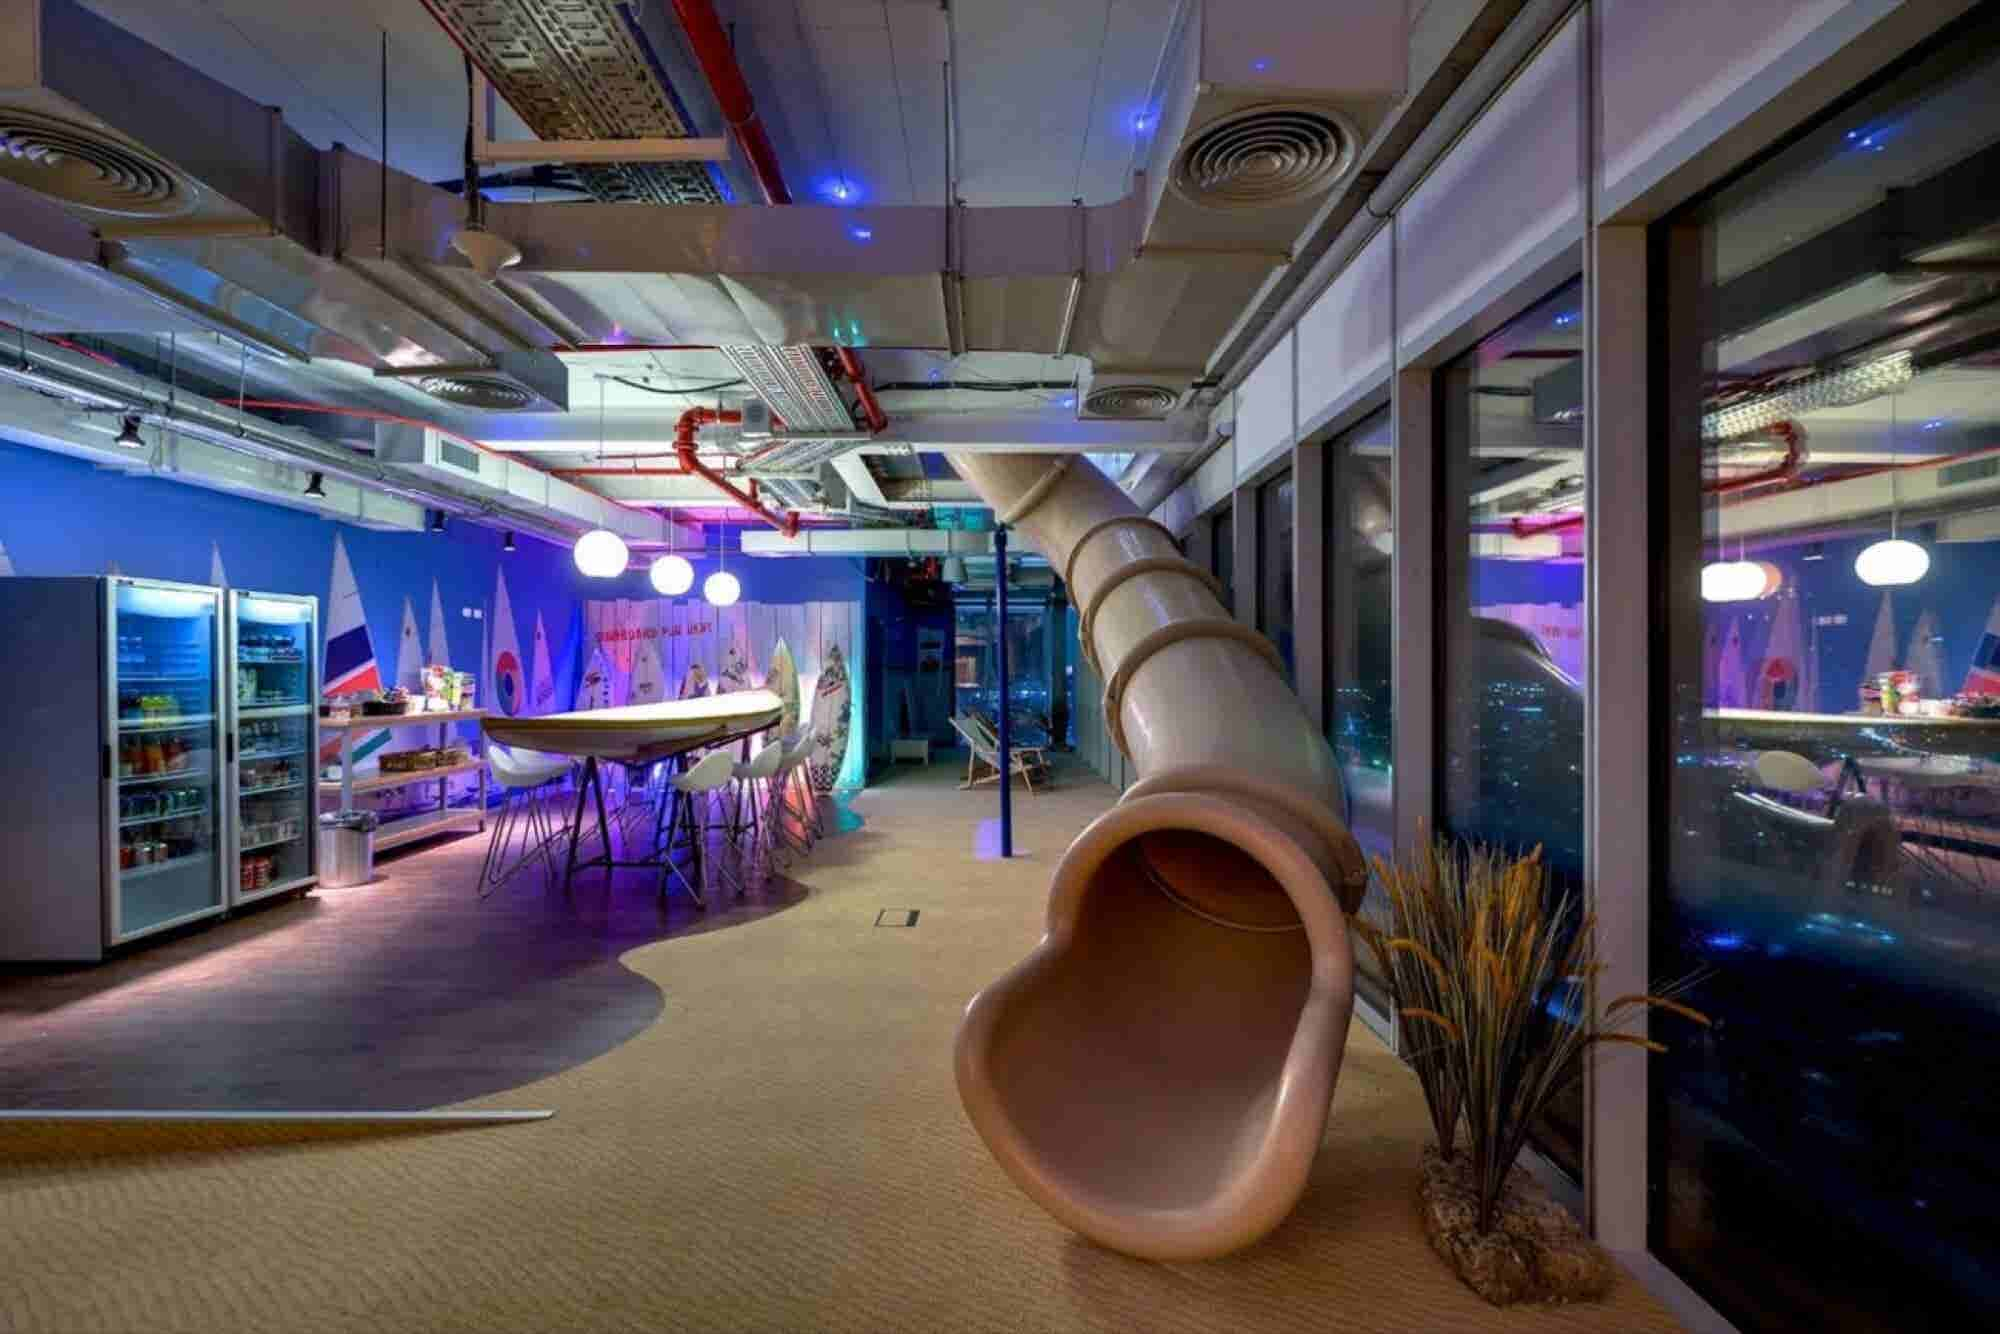 Office Slides? A Draft Beer Bar? Check Out These 6 Innovative (and Fun) Workspaces